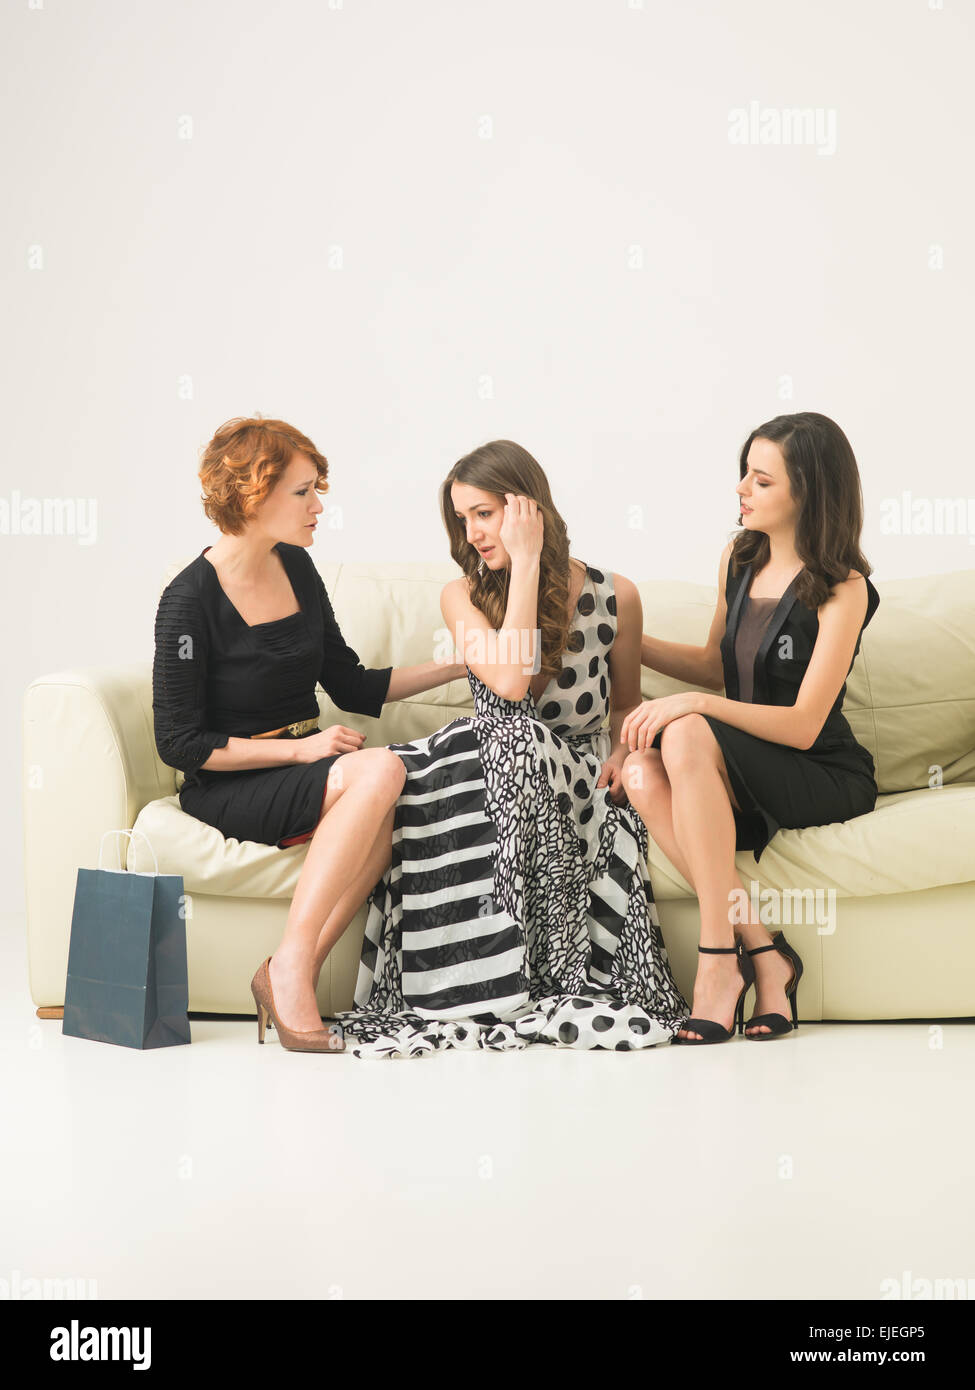 two beautiful young women sitting on sofa, comforting another while she worries not having money to buy a dress - Stock Image